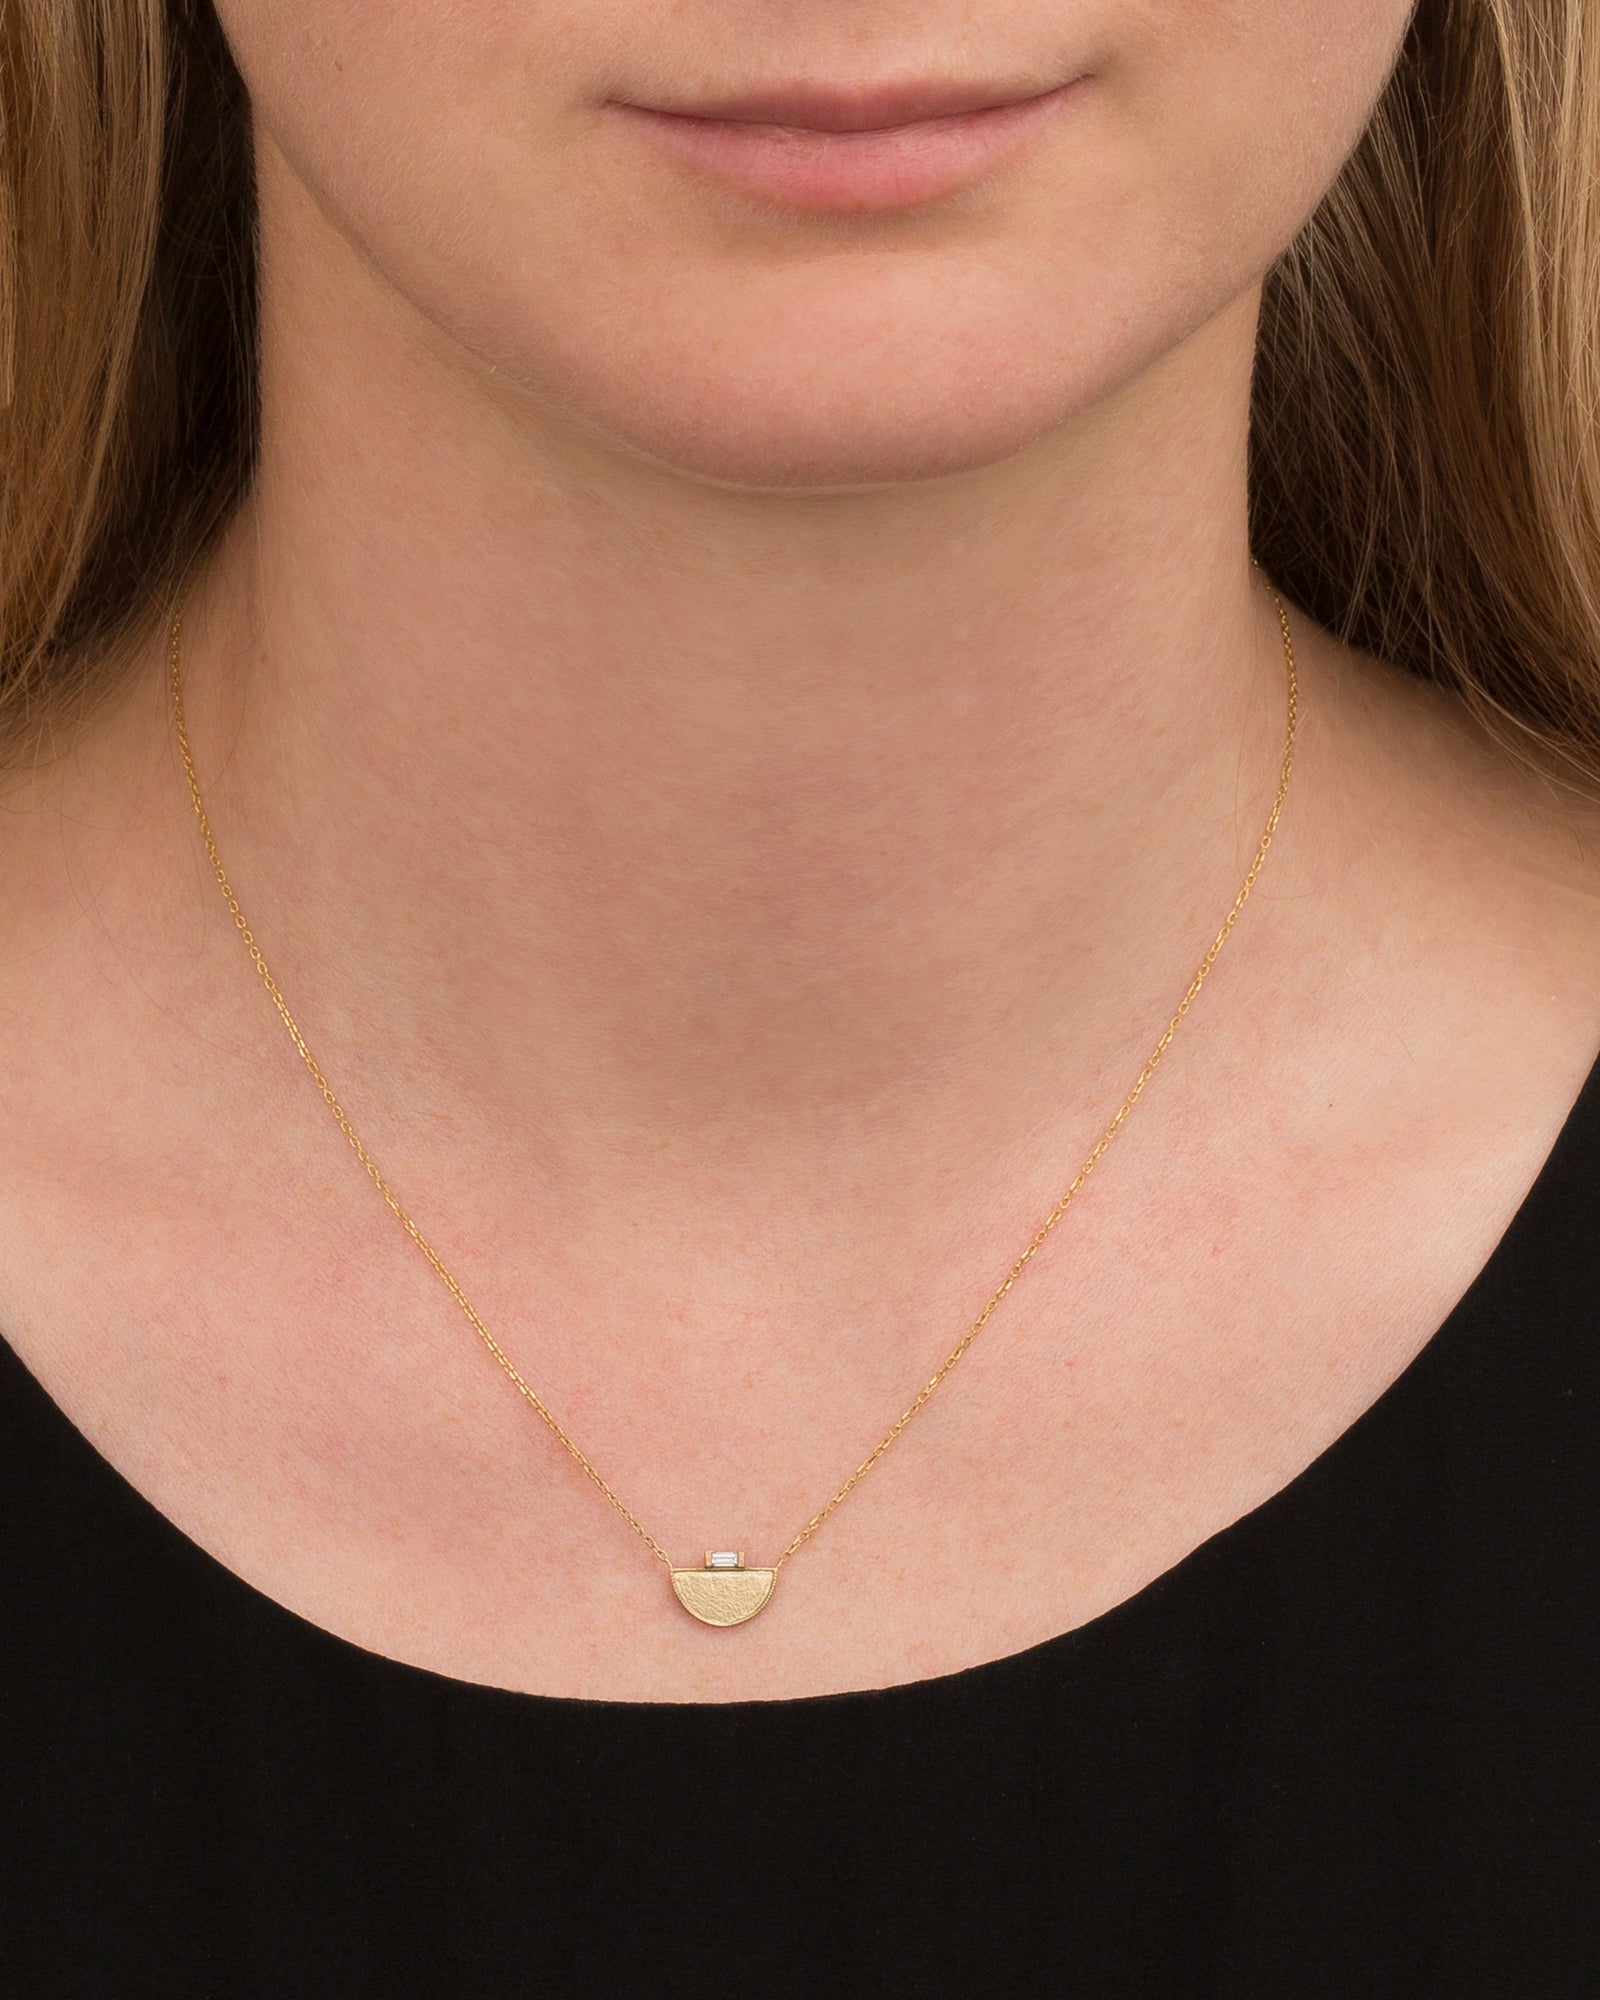 Half Moon Signet Necklace by Jennie Kwon for Broken English Jewelry